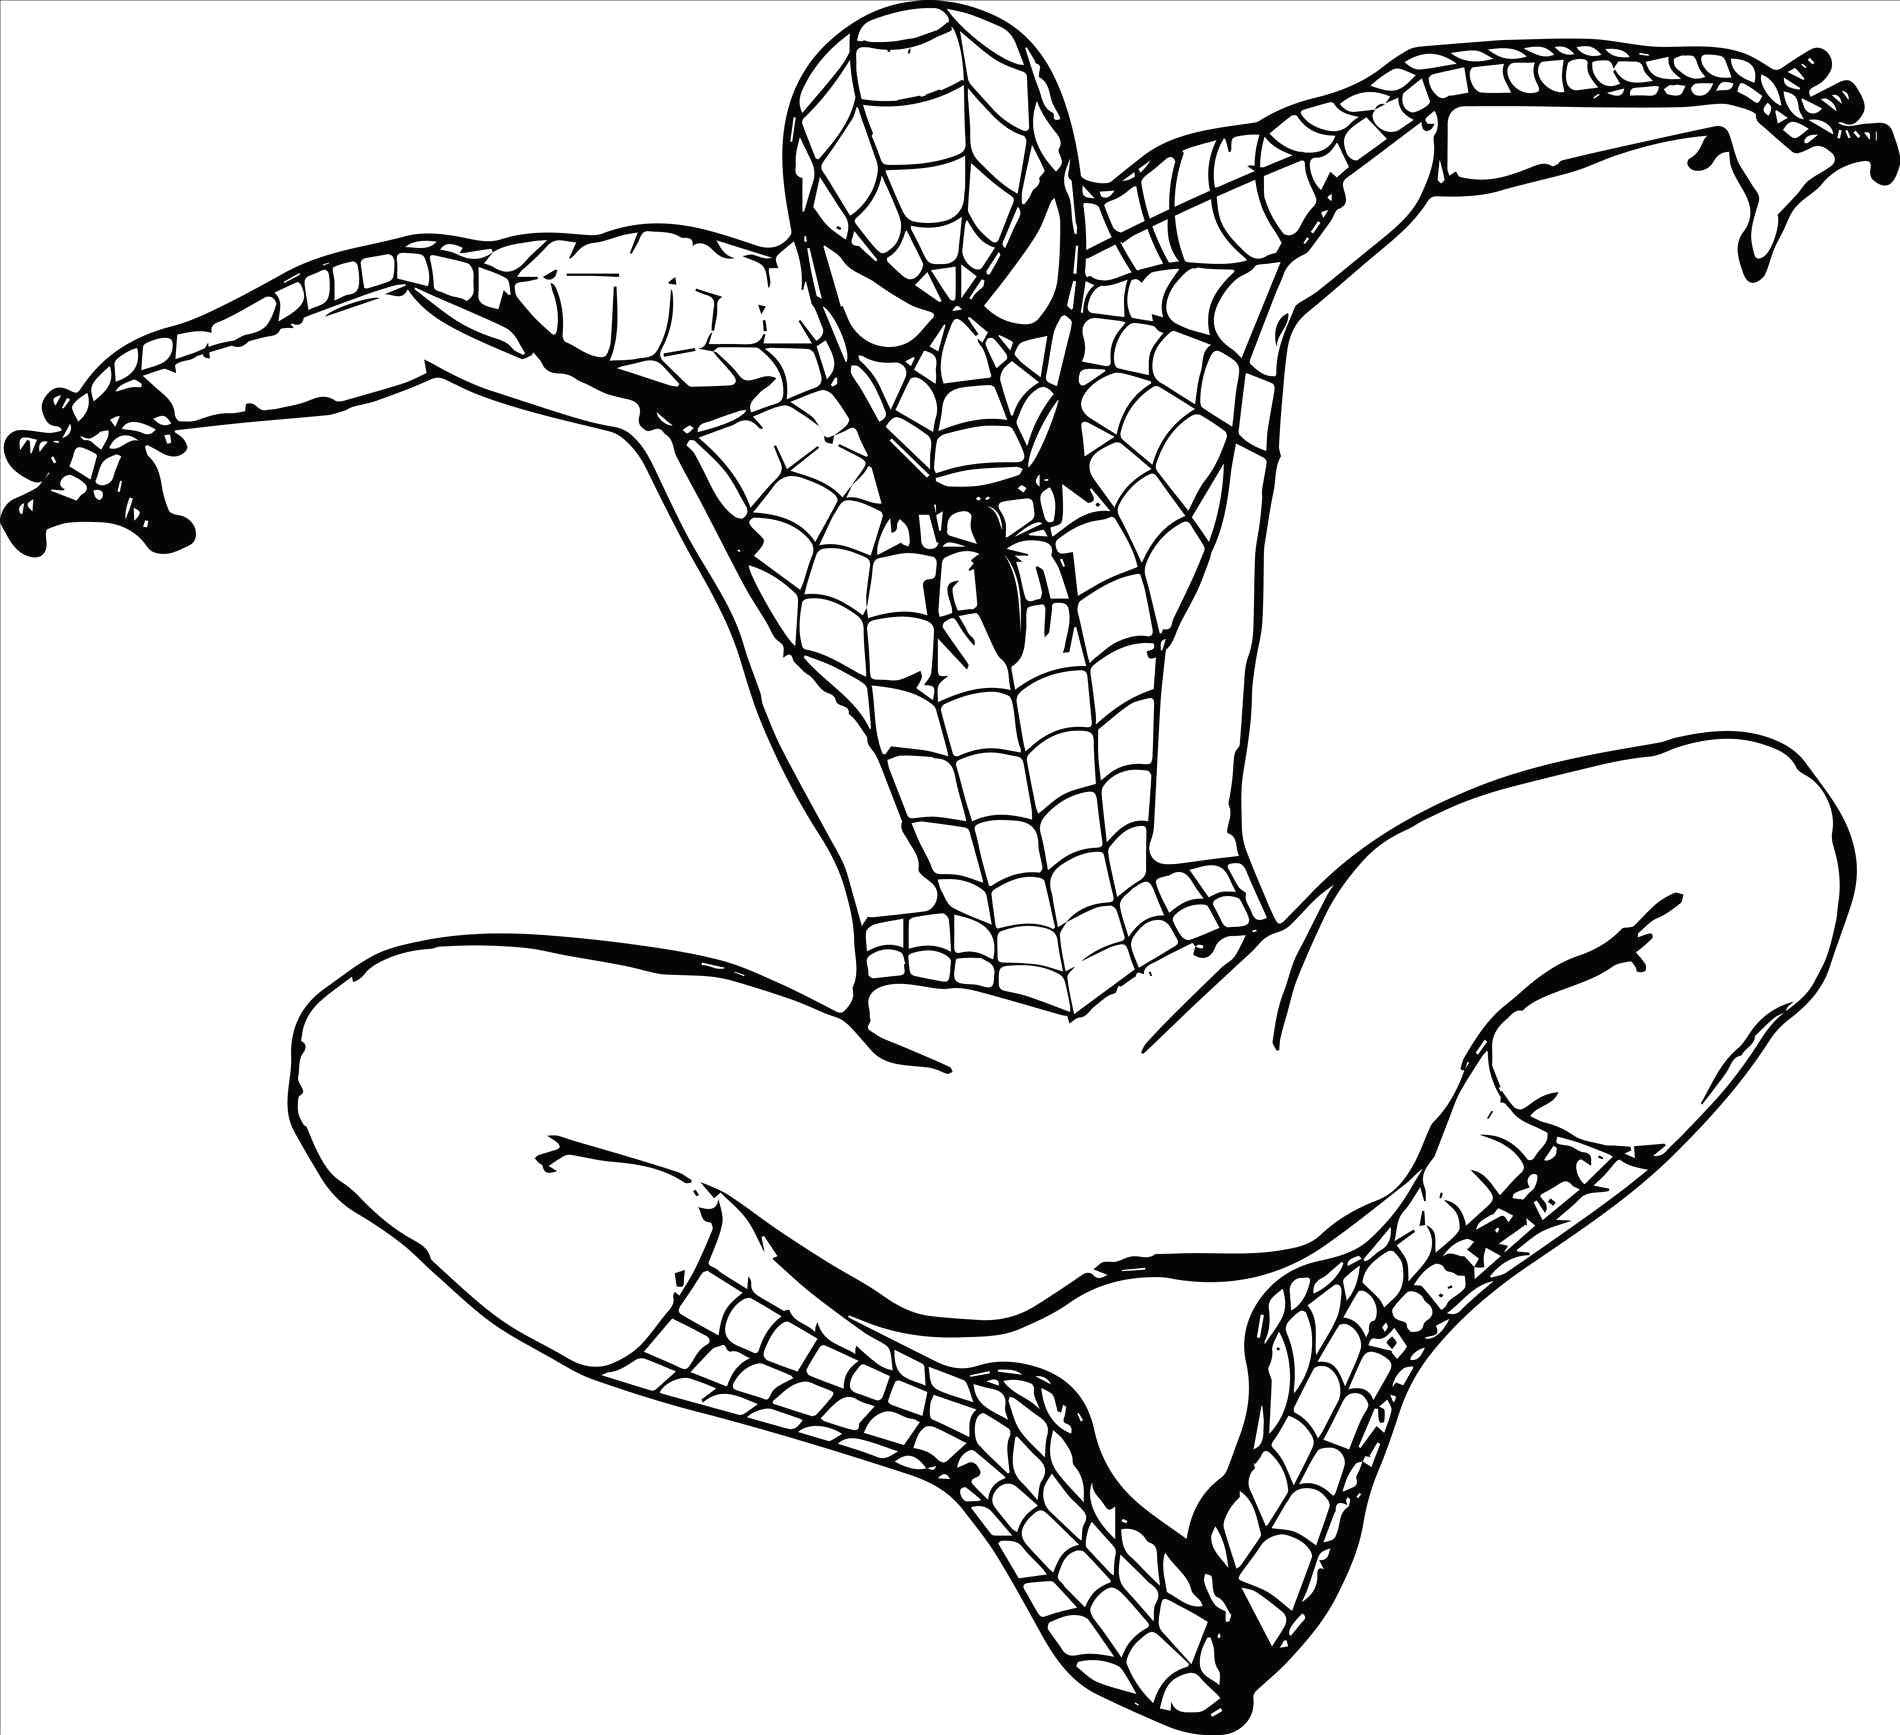 Easy Valentine Drawings Superheroes Easy to Draw Spiderman Coloring Pages Luxury 0 0d